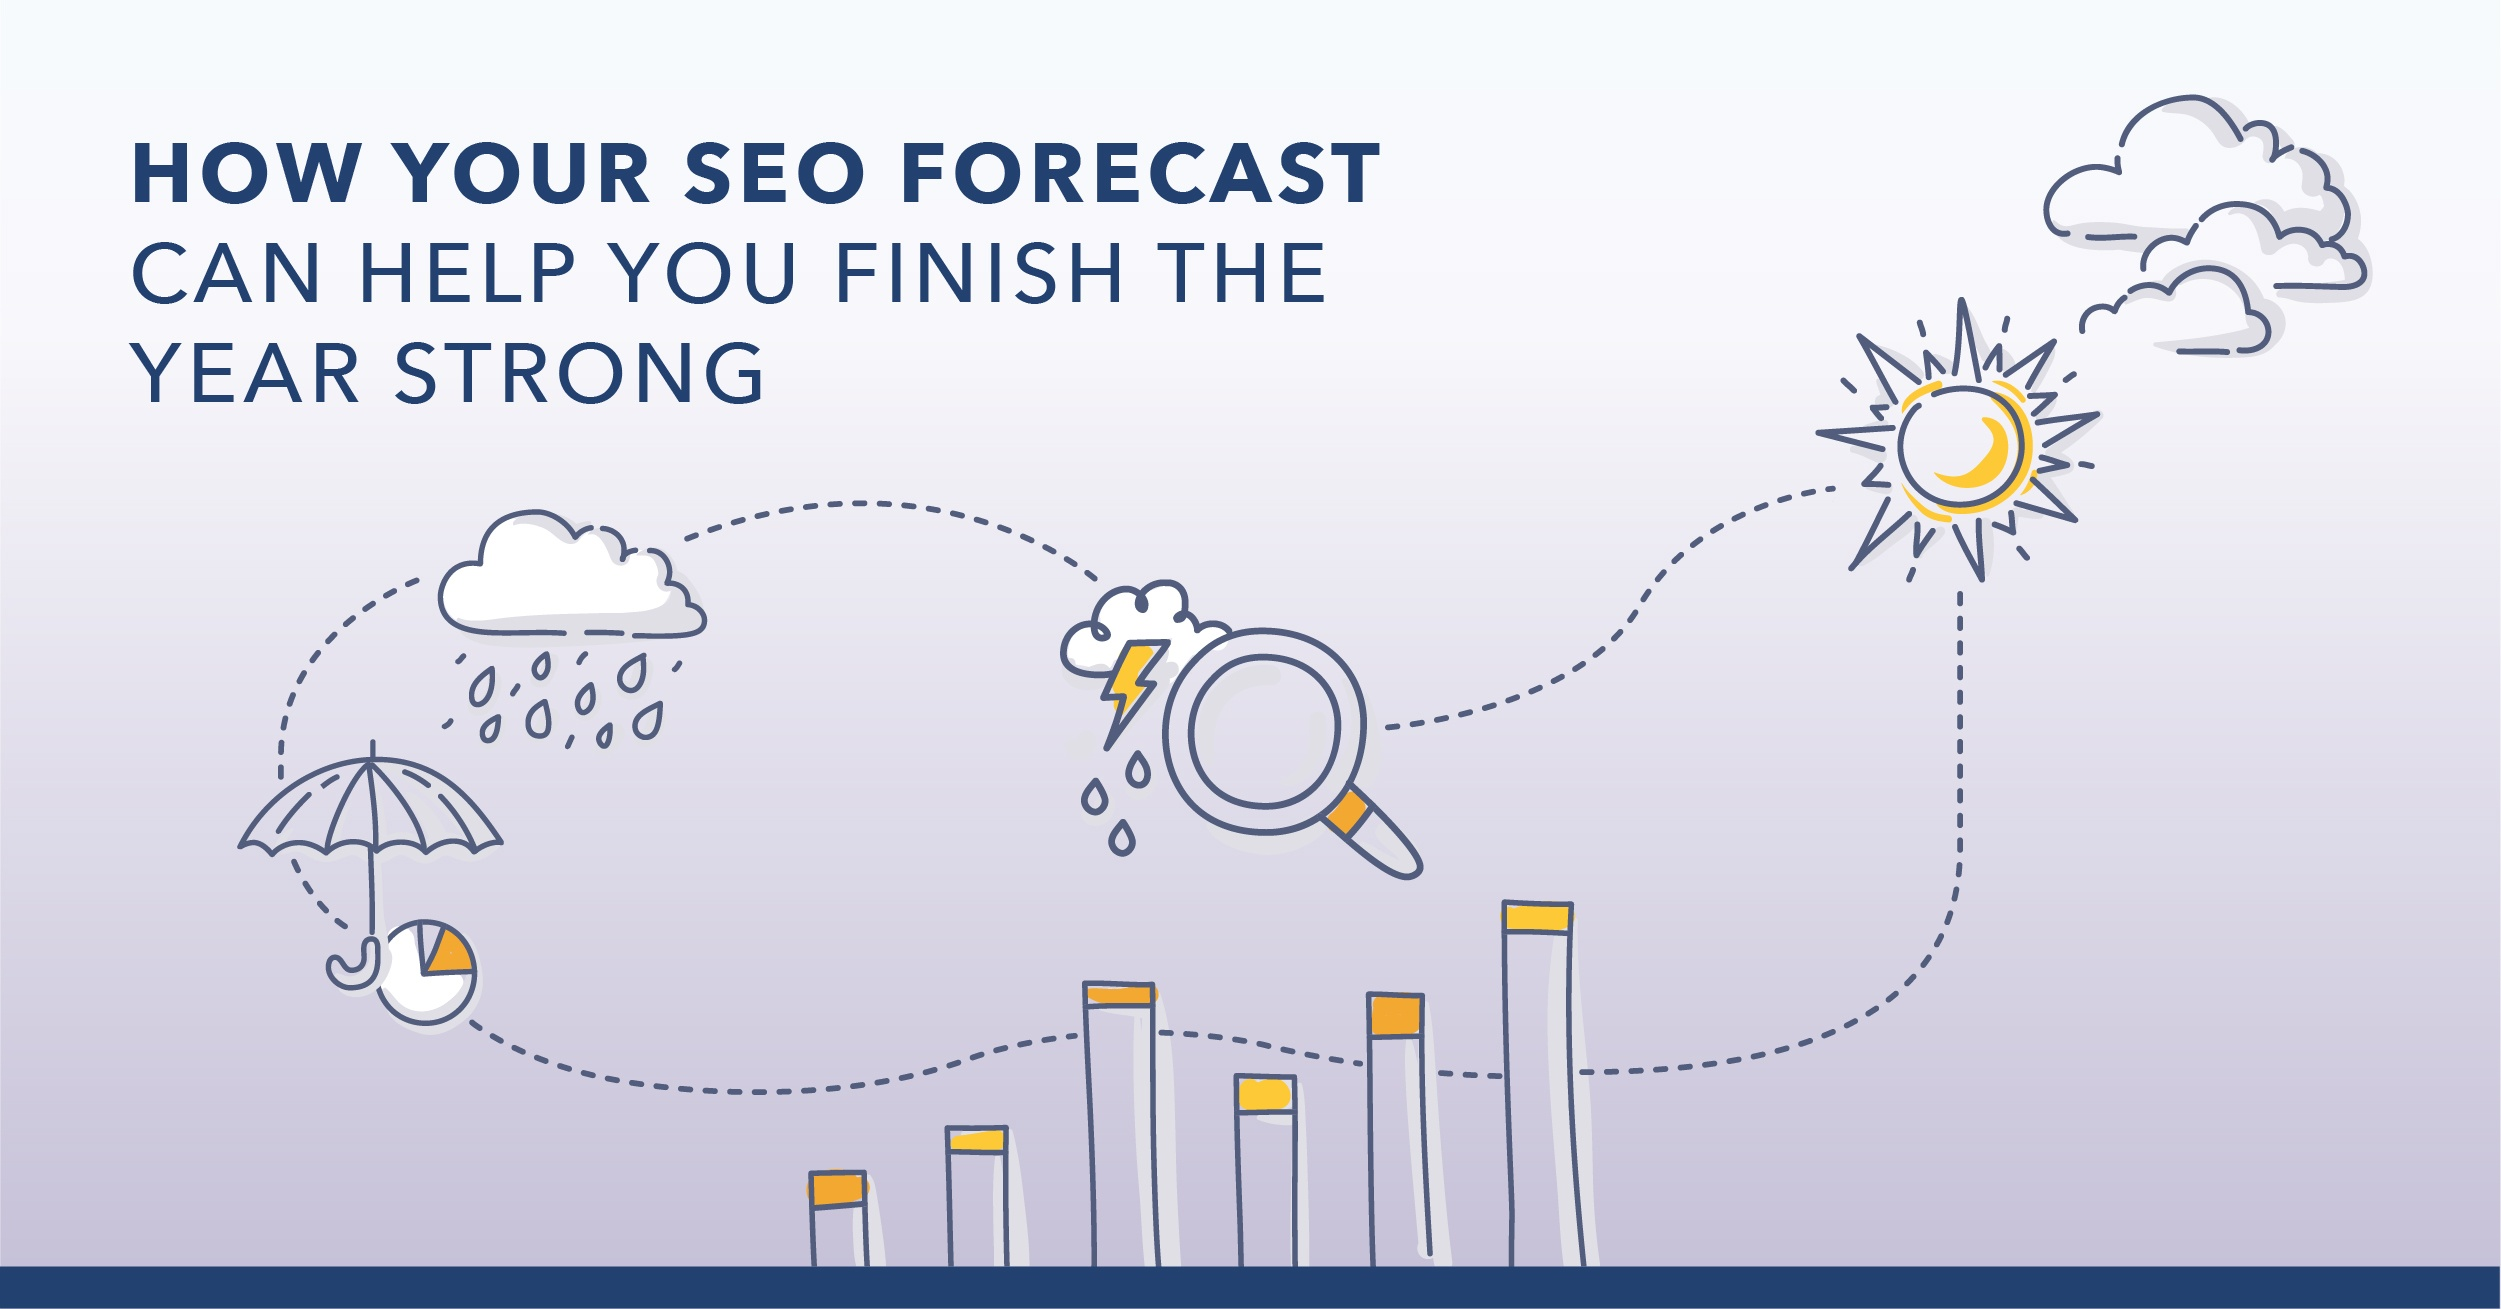 How to Use SEO Forecast Data to Gain Quick Visibility Wins - Featured Image